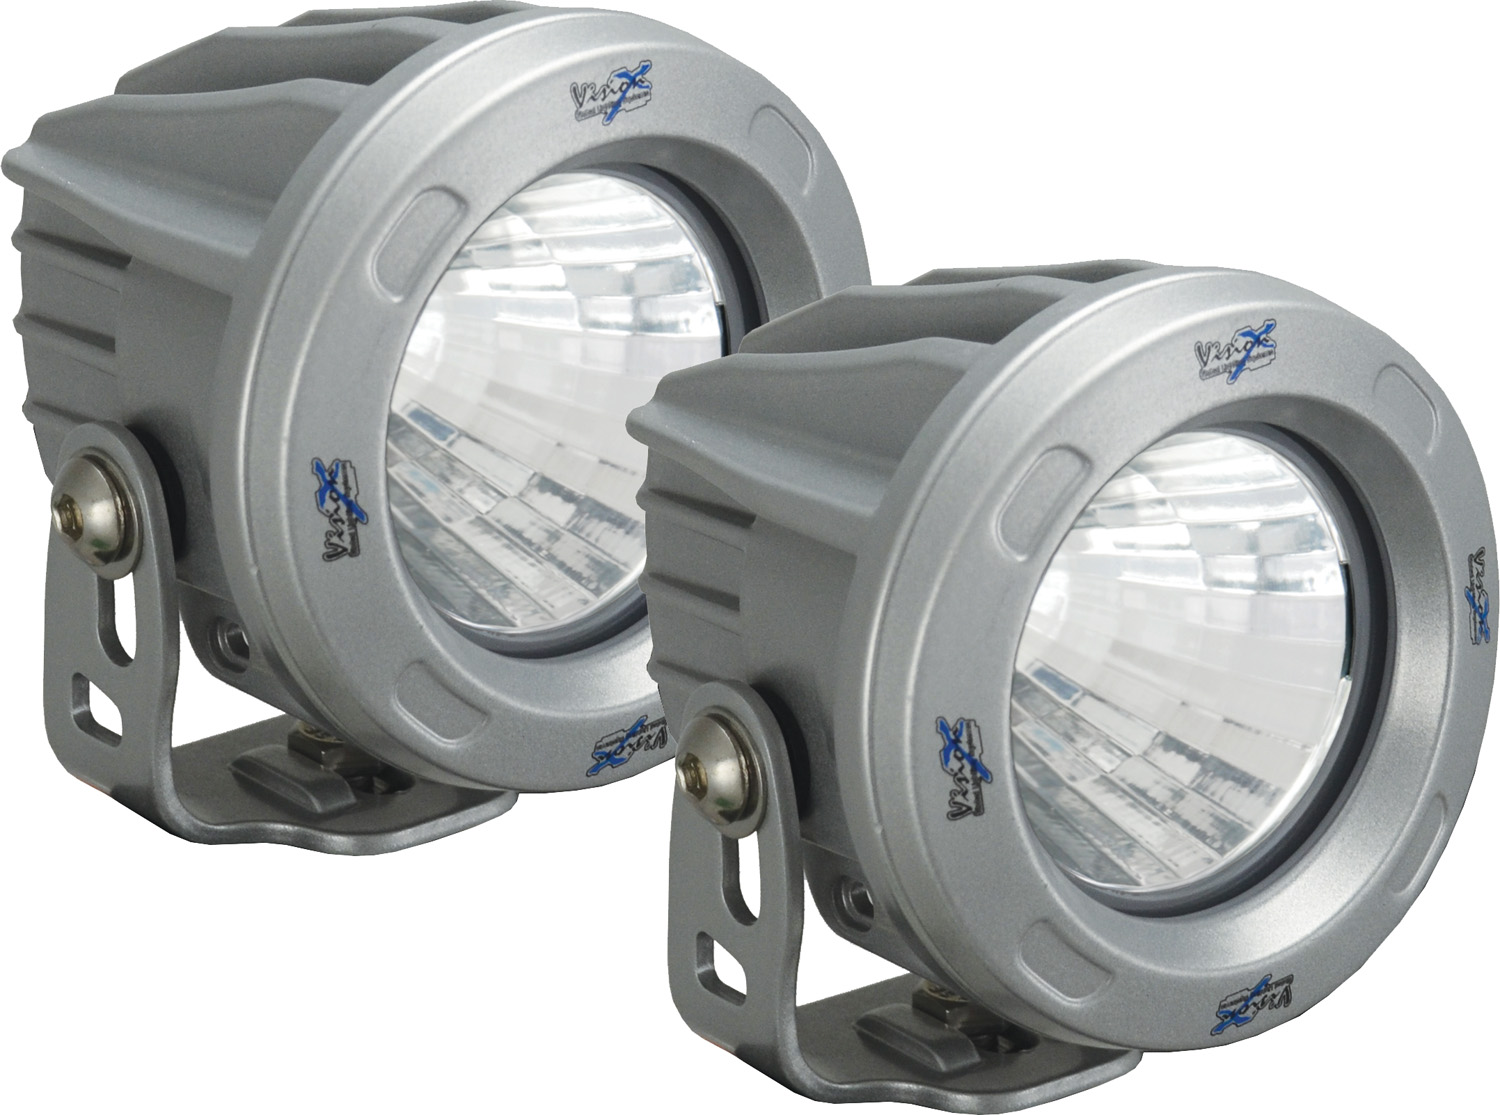 OPTIMUS ROUND SILVER 1 10W LED 60ç FLOOD KIT OF 2 LIGHTS